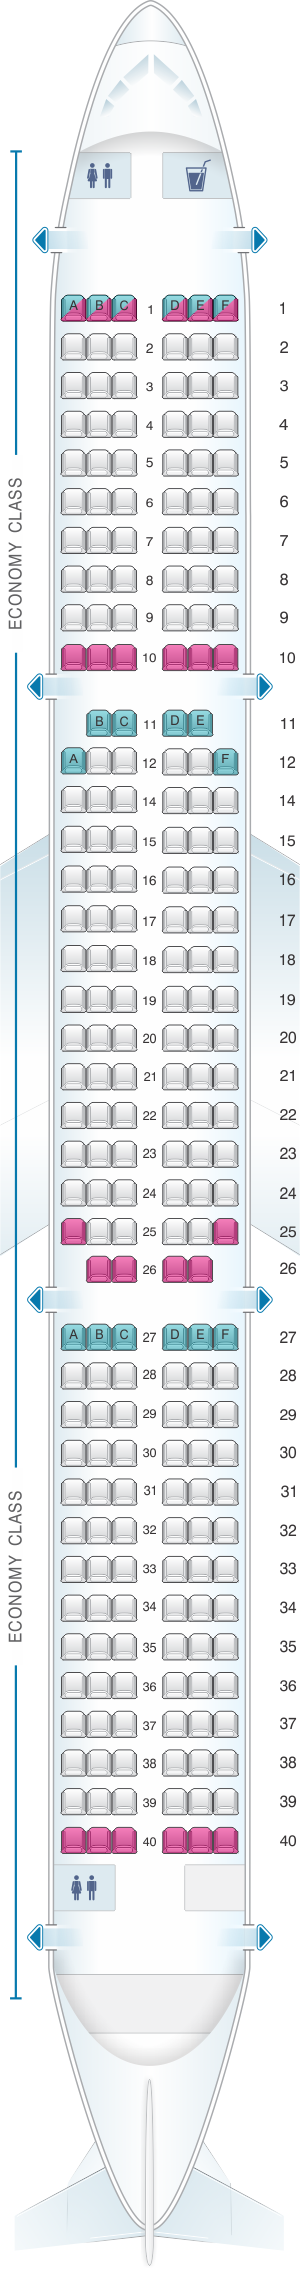 Seat map for Cebu Pacific Air Airbus A321